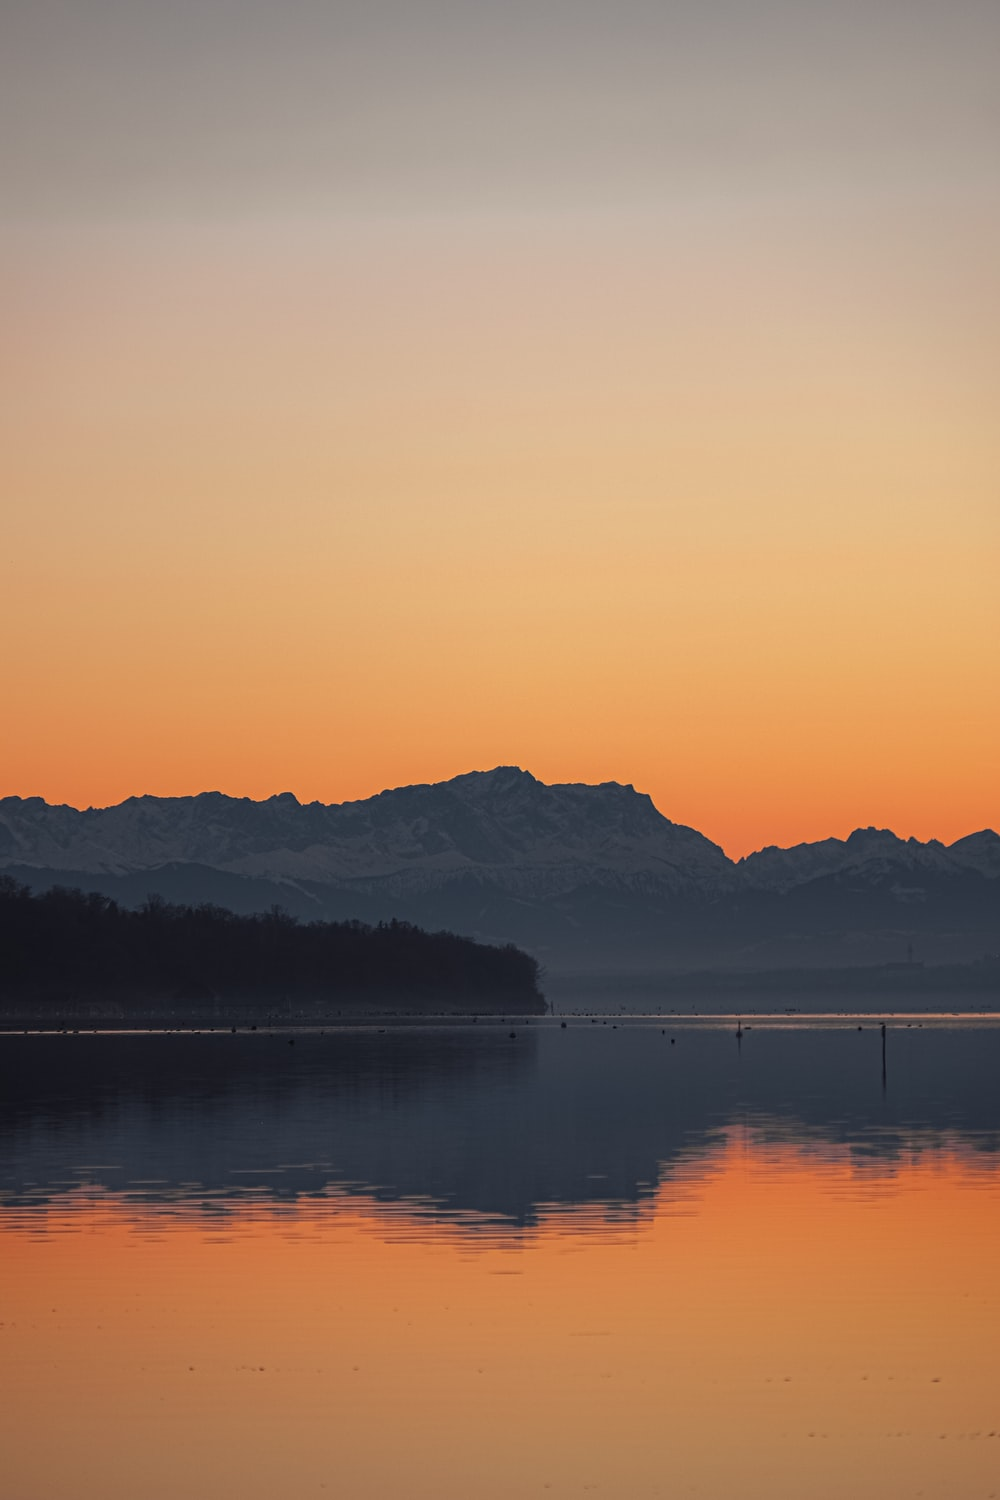 silhouette photography of a mountain and body of water during golden hour